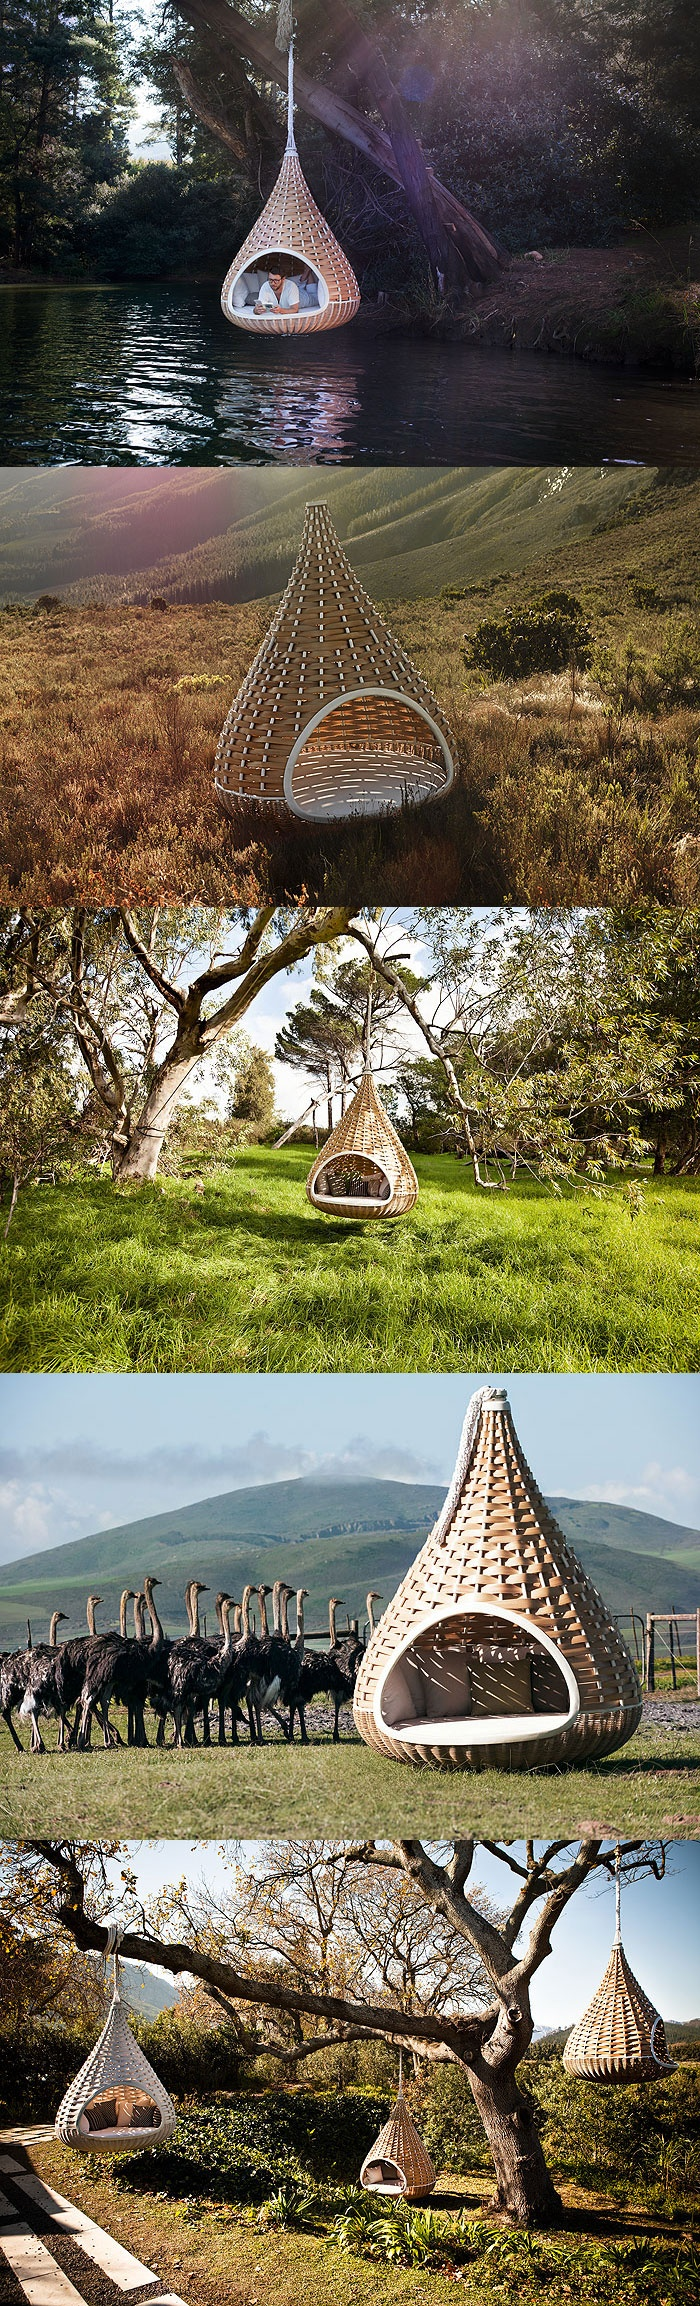 """#ArtivDesignCenter DEDON - Designed by Daniel Puzet and Fred Frety, """"Nest Rest"""" is made entirely from recyclable, non-toxic, weatherproof materials. https://www.facebook.com/pages/Artiv-Design-Center/120027678056383"""